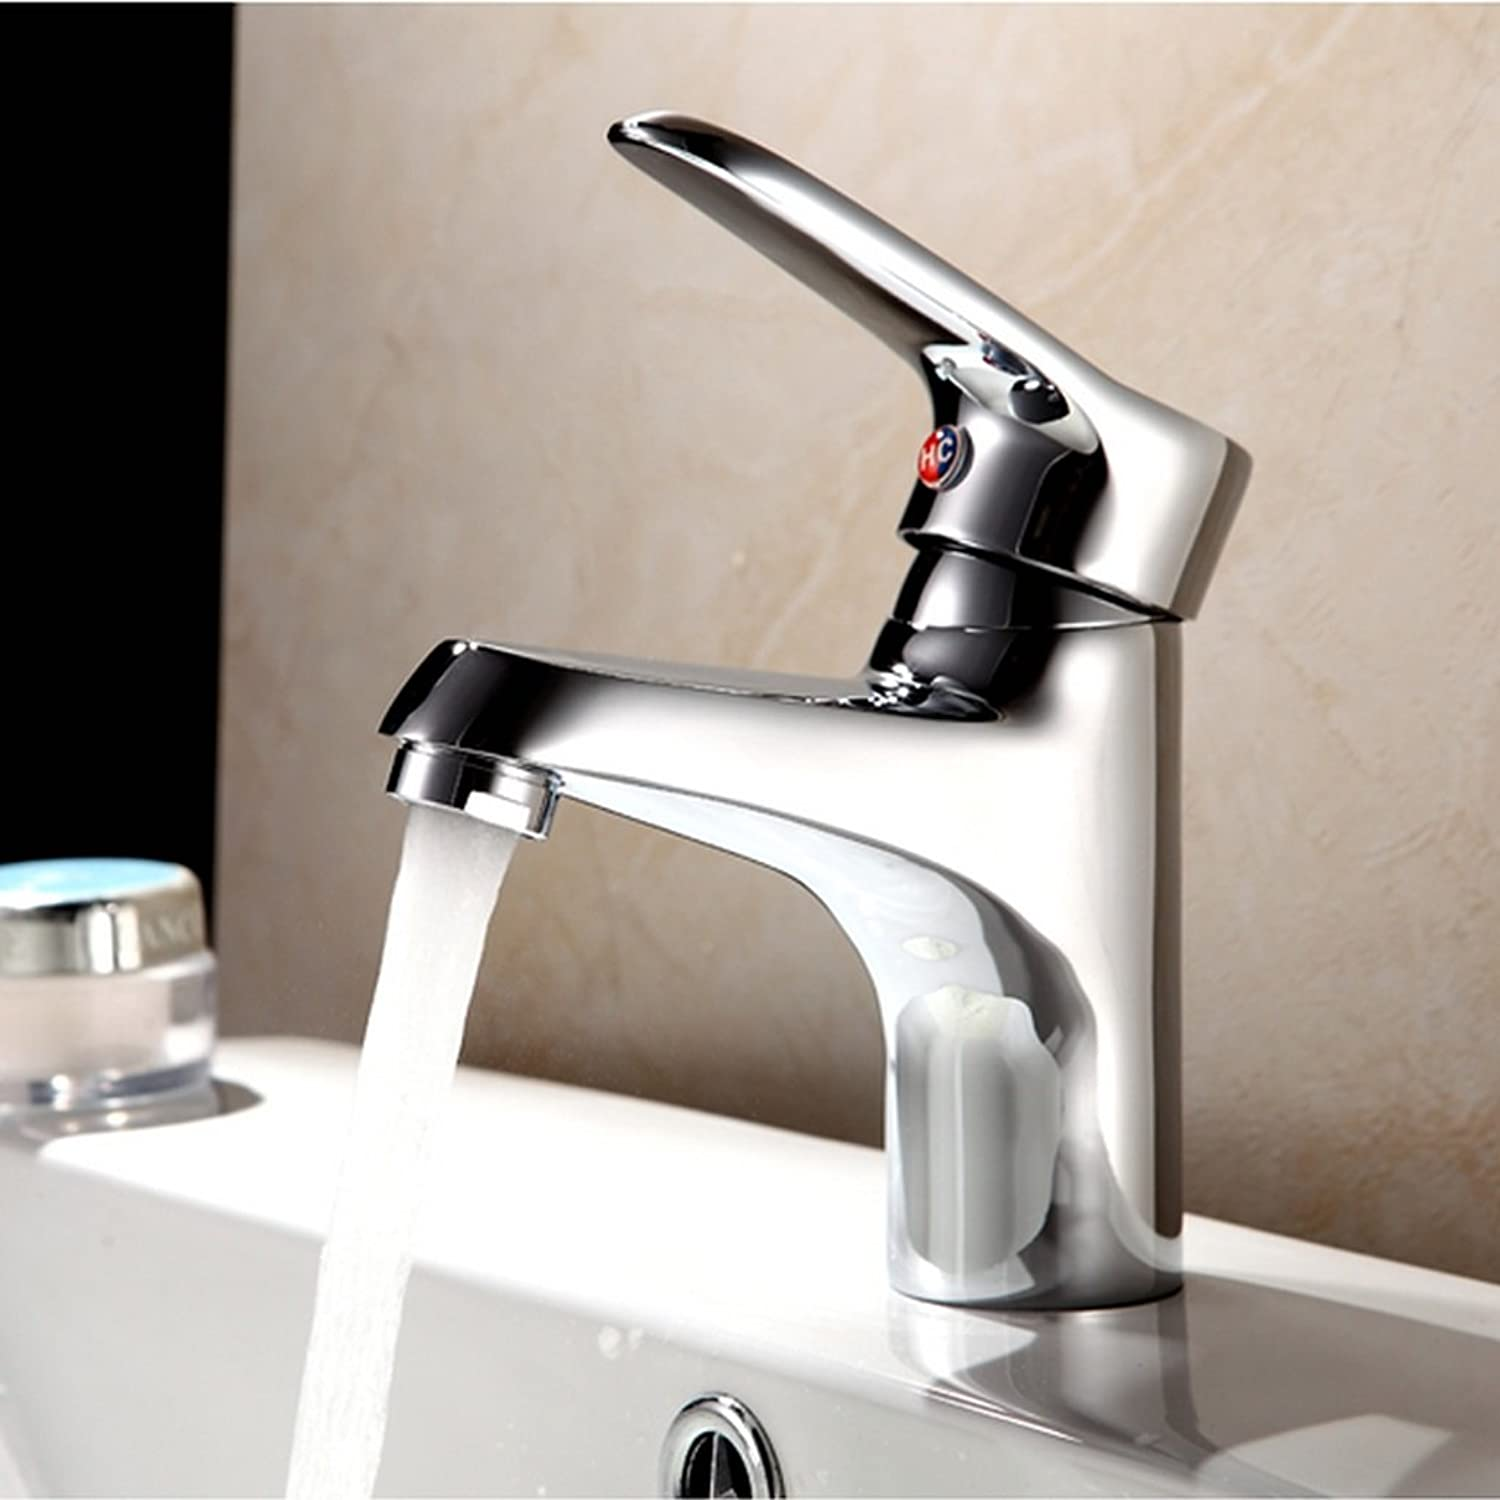 MEILING Basin Faucet Hot And Cold Single Hole Copper Table Pot Wash Basin Wash Basin Bathroom Cabinet Faucet